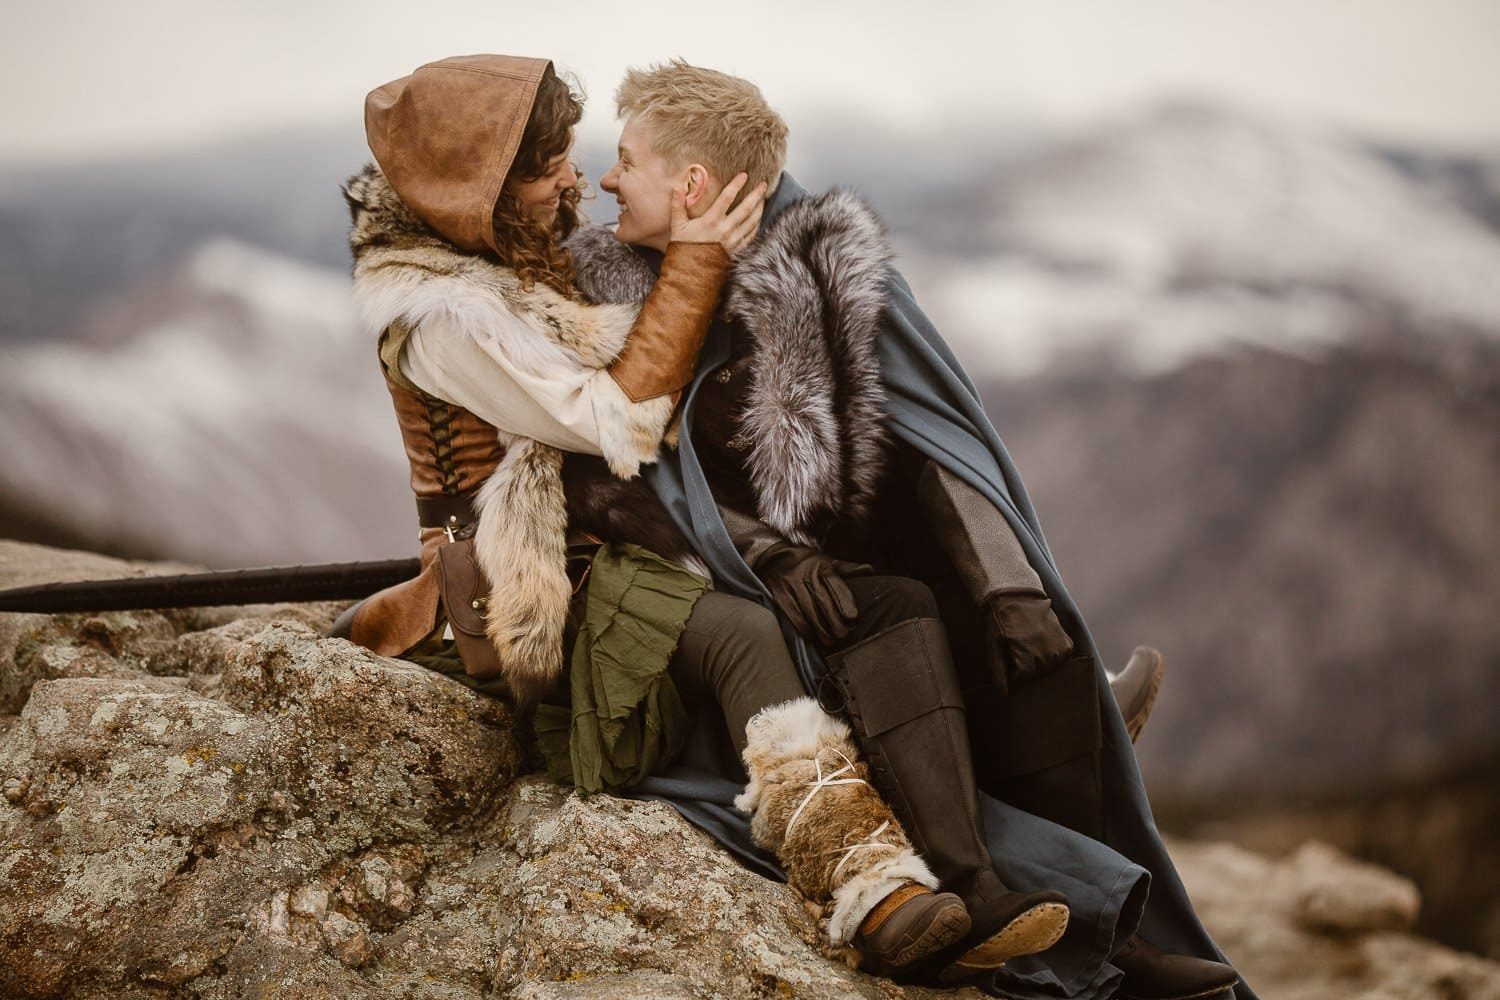 GAME OF THRONES INSPIRED ADVENTURE TRAVEL SESSION | COLORADO ADVENTURE ELOPEMENT PHOTOGRAPHER